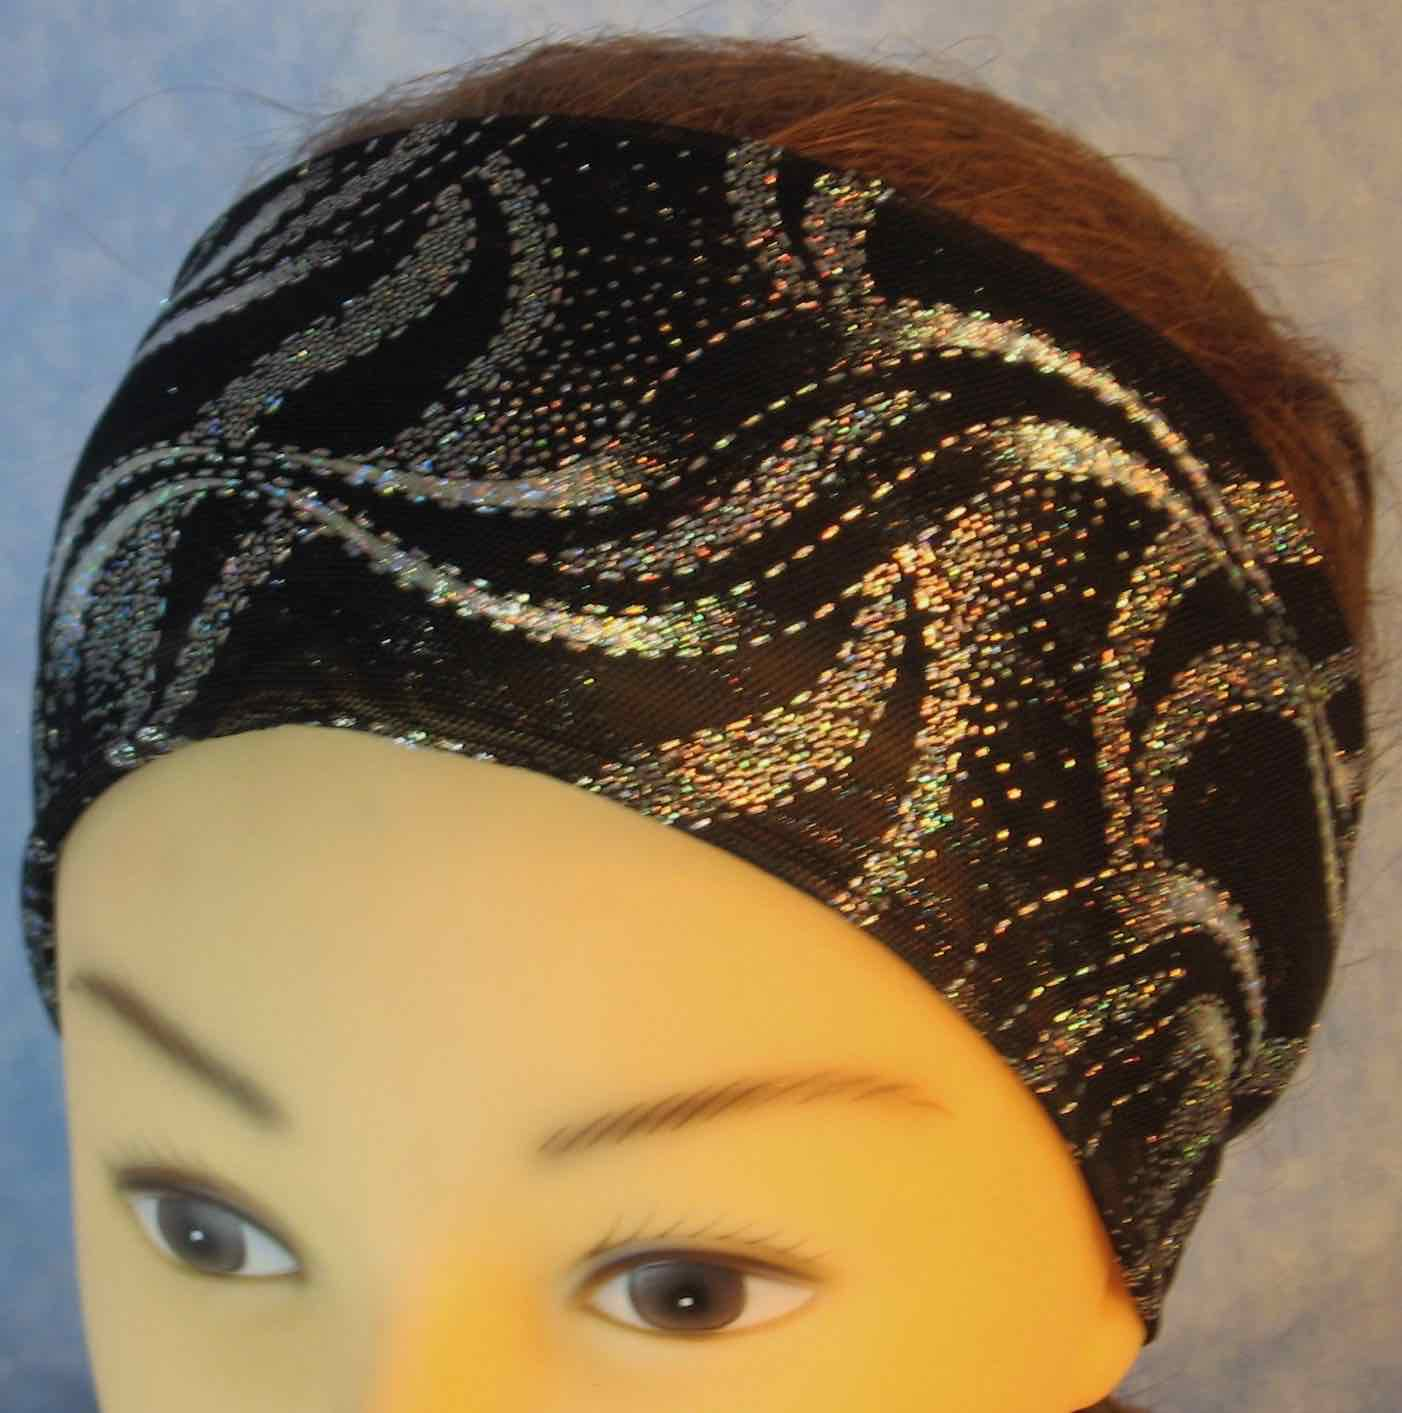 Headband-Silver Waves On Black Stretchy Tulle-Youth L-XL